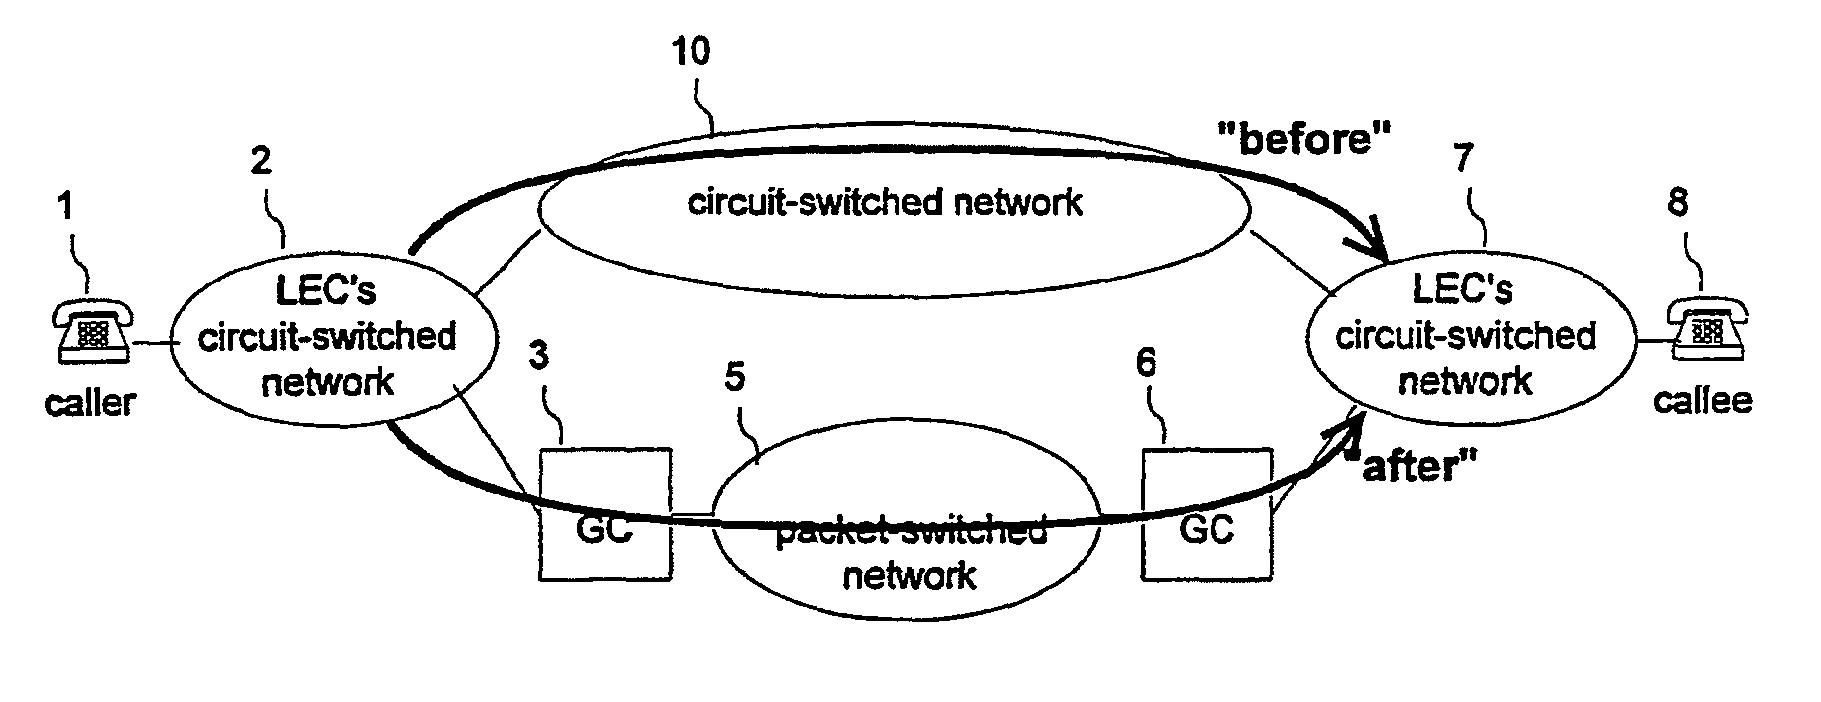 patent us8780890 - hybrid packet-switched and circuit-switched telephony system